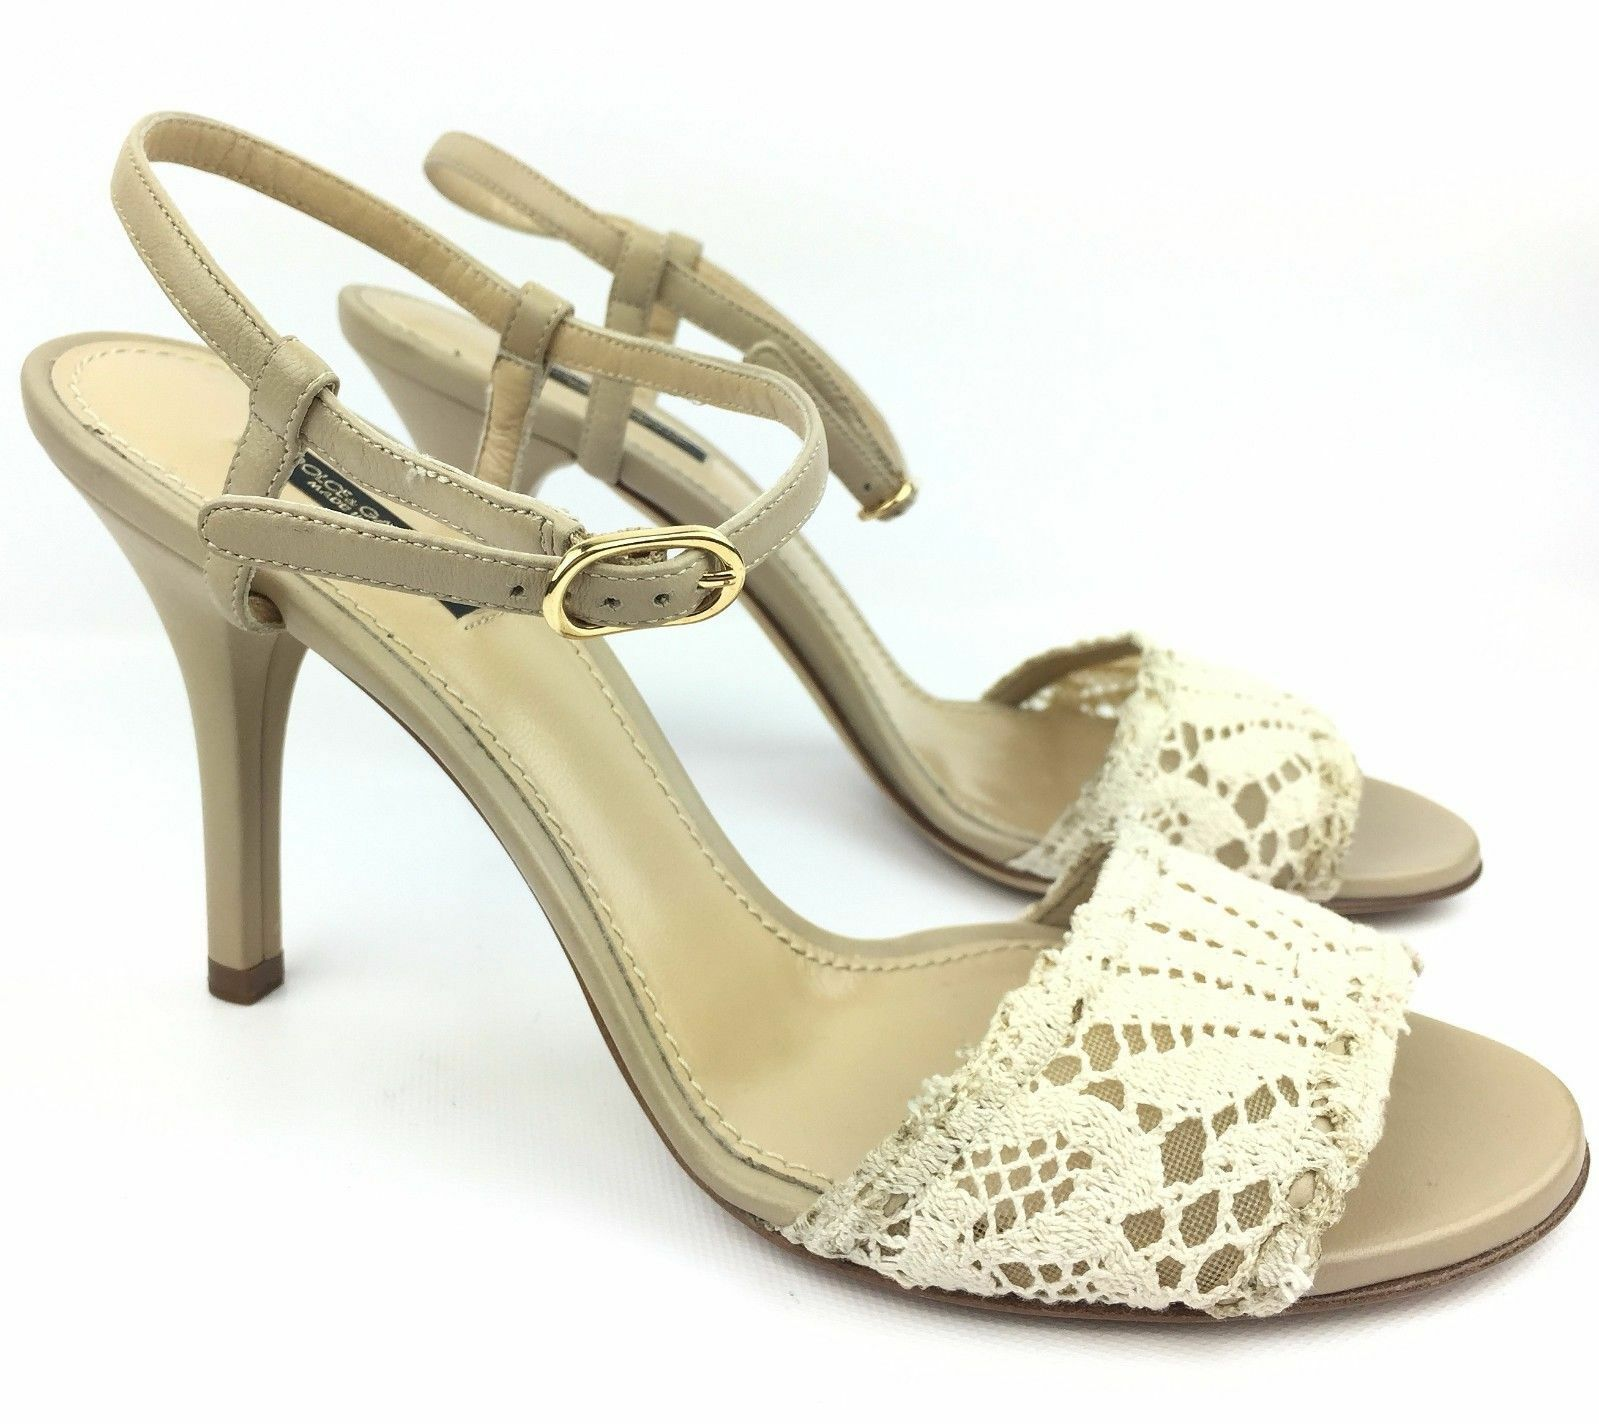 Dolce & Gabbana Beige Leather & Lace Ankle Strap Heels Sandals sz: 39 | US 8